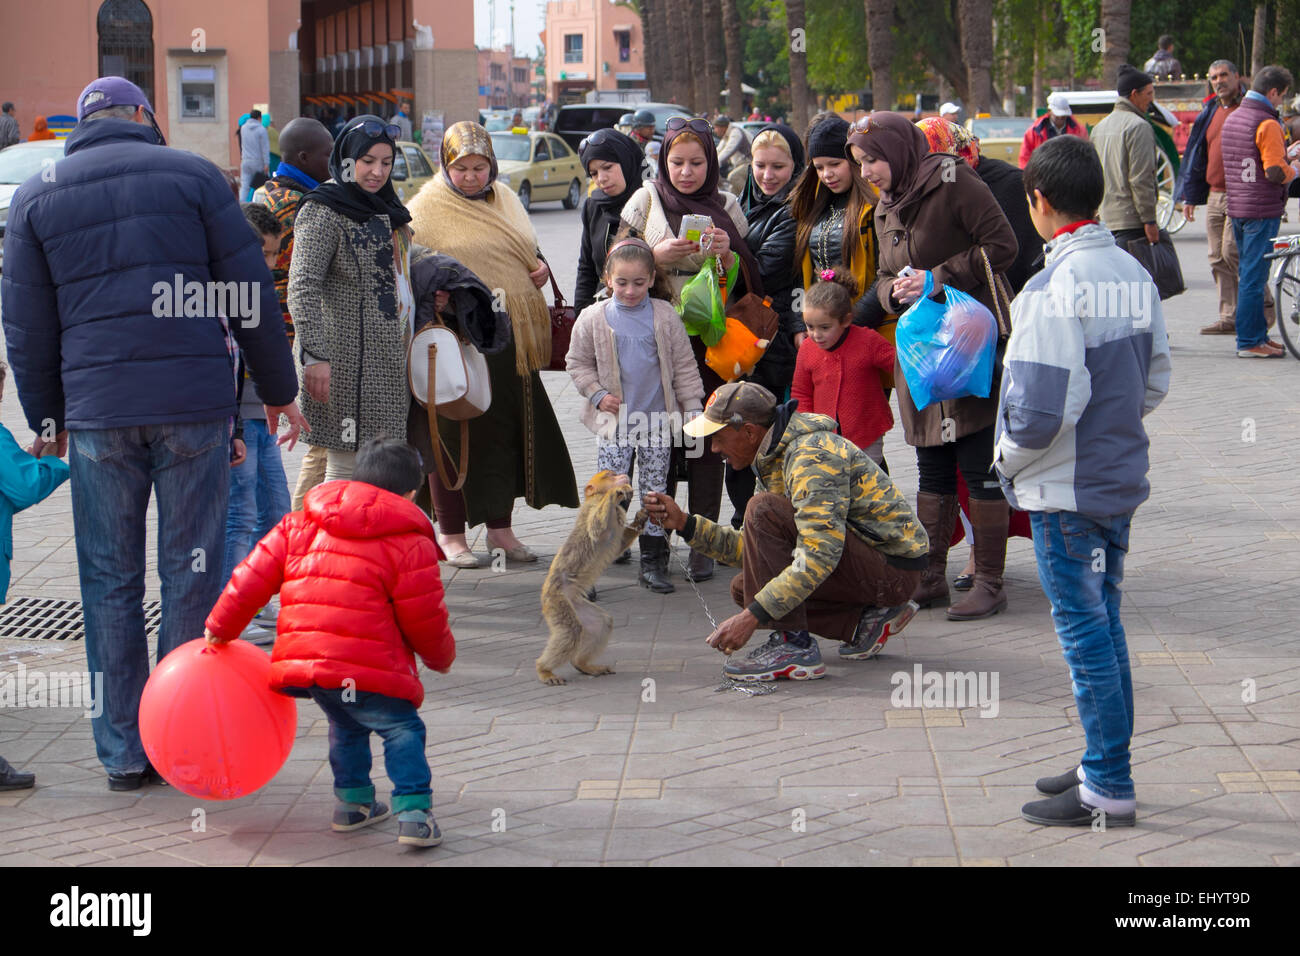 Monkey entertaining shoppers, Djemaa el-Fna square, Medina, old town, Marrakesh, Marrakech, Morocco, North Africa - Stock Image